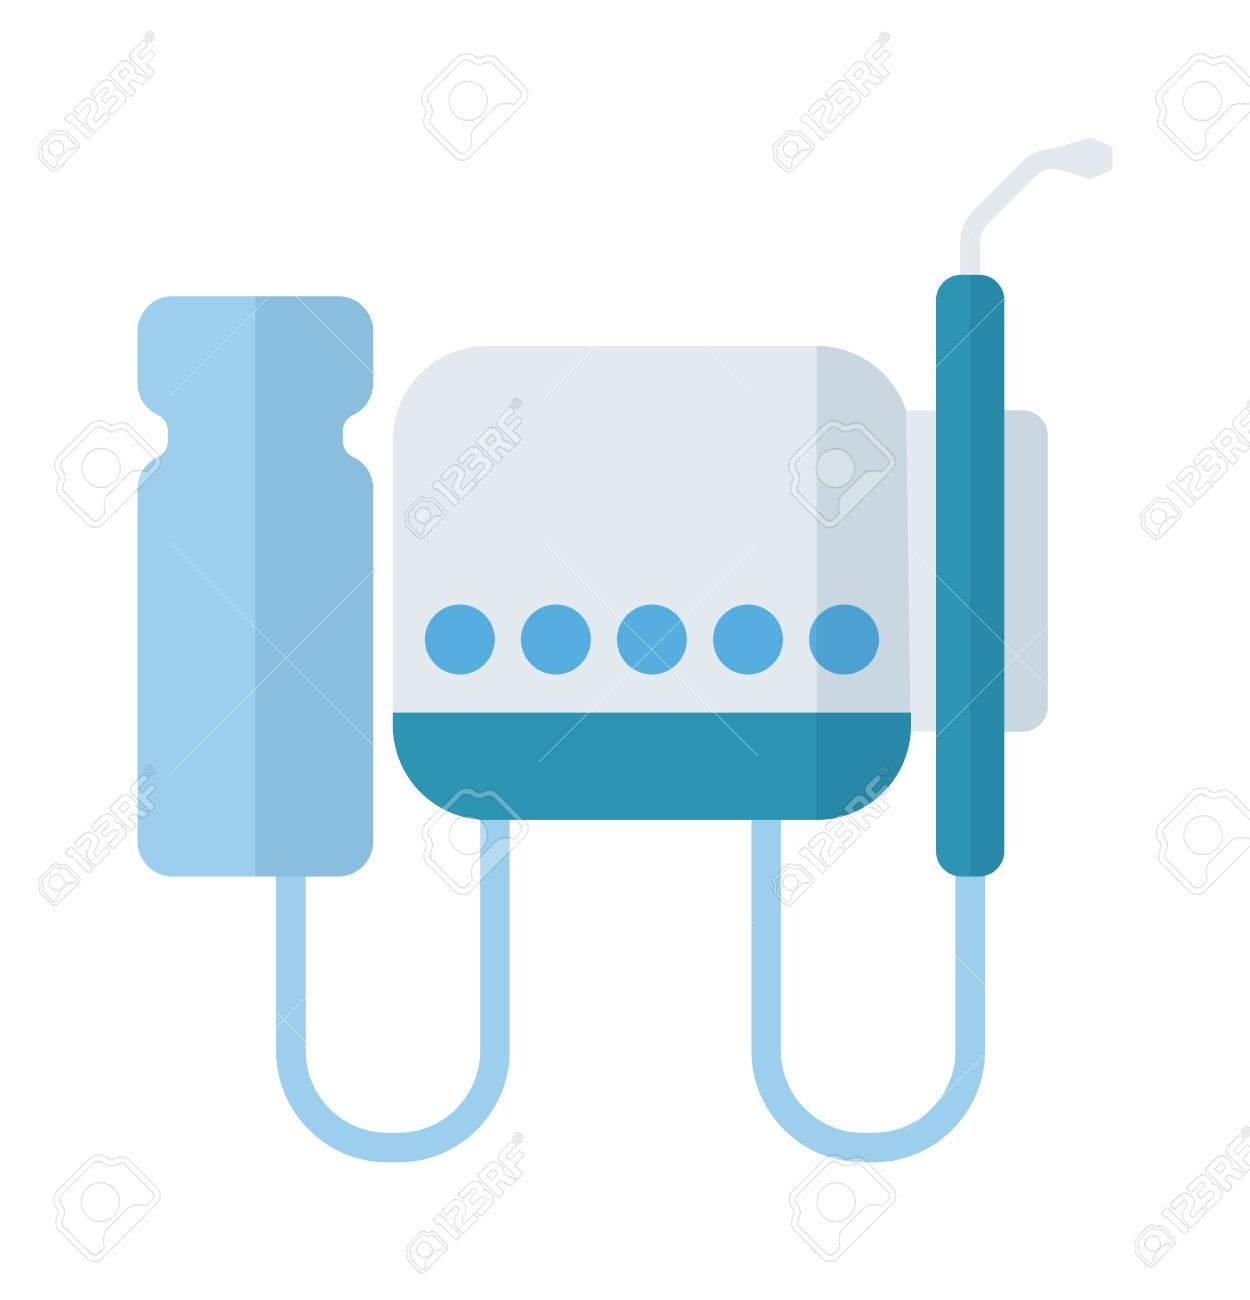 Dental Equipment Vector Illustration Dentist Medical Tool Treatment Hygiene Clinic Health Care